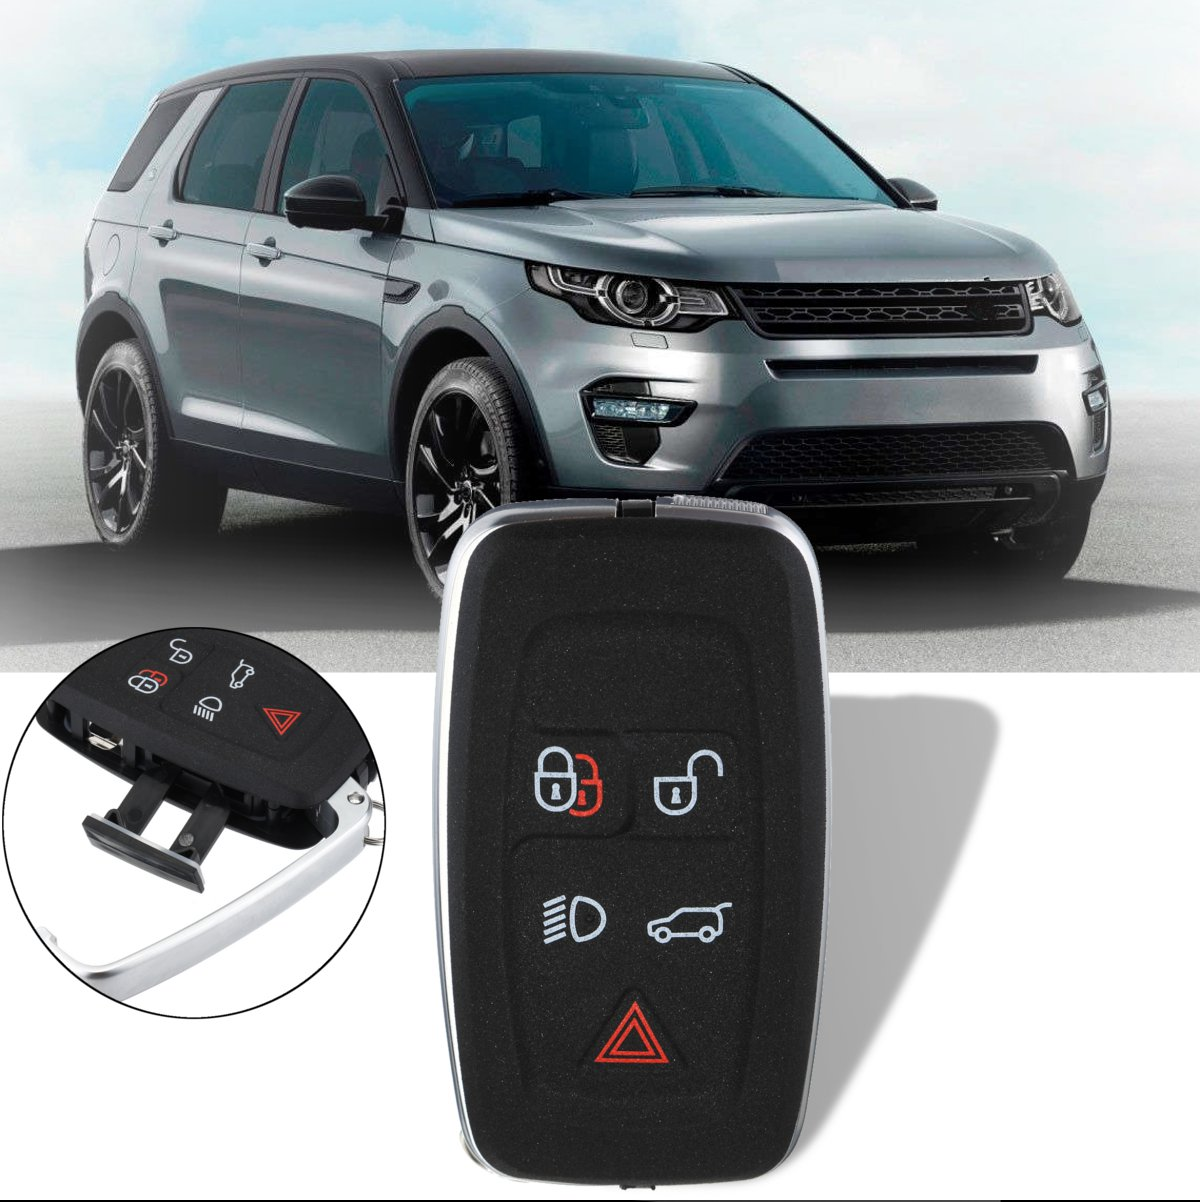 New 5 Button Lock Unlock Remote Low Beam Key Trunk Panic Fob Case Shell For Land Rover Range Rover Sport 2010 2011 2012